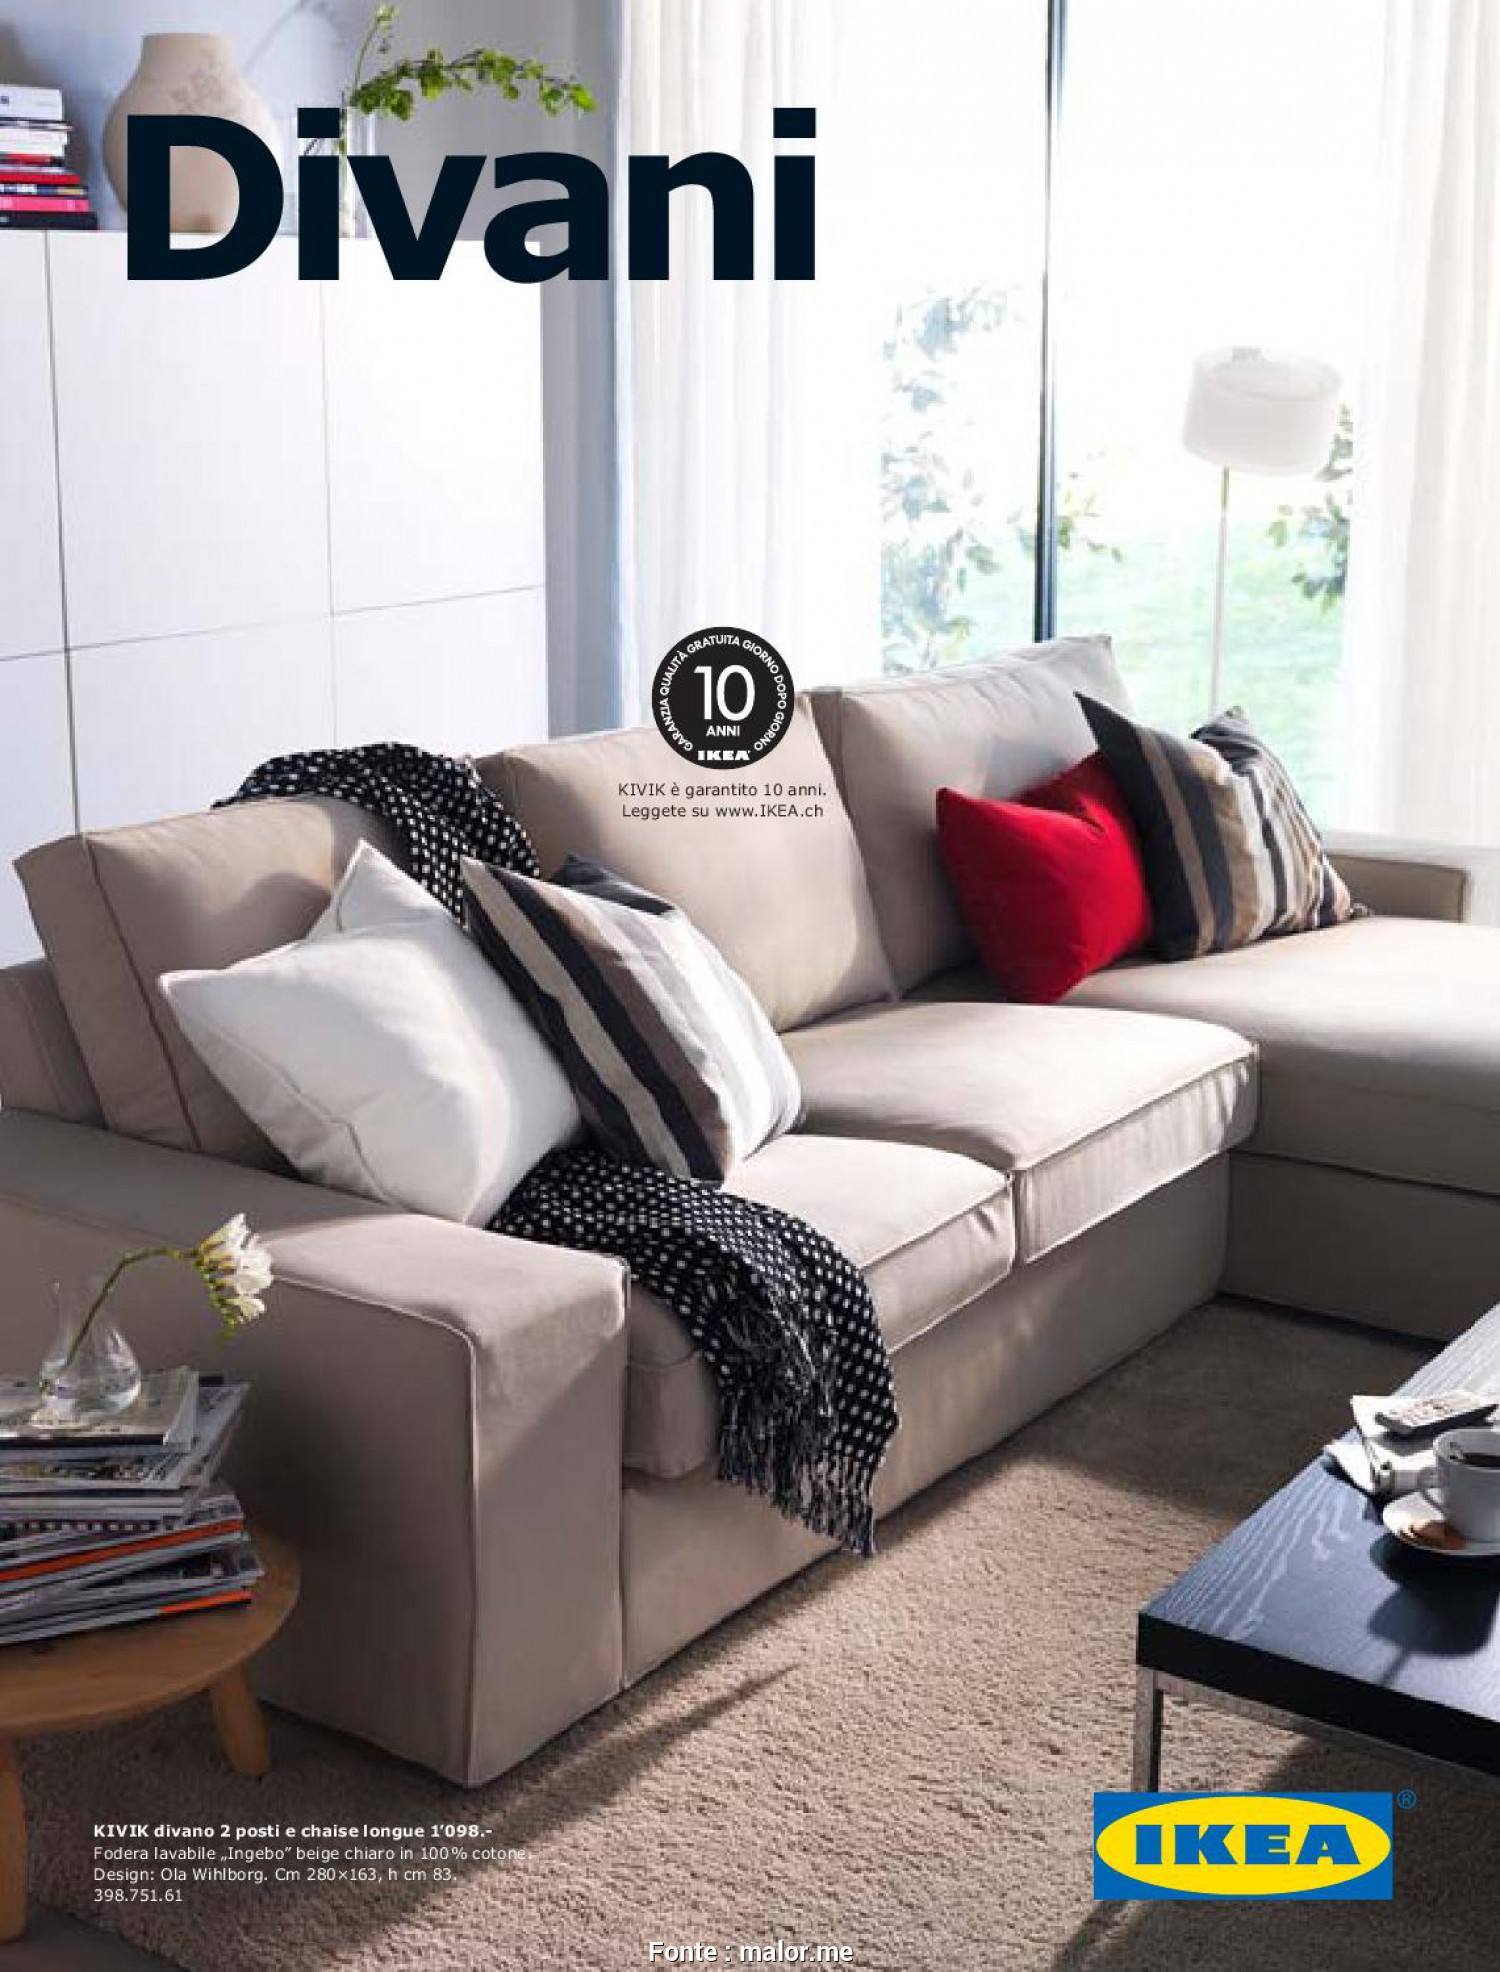 Divani Relax Ikea Balebo Loveable 6 Divano Beige Ikea Keever For Congress